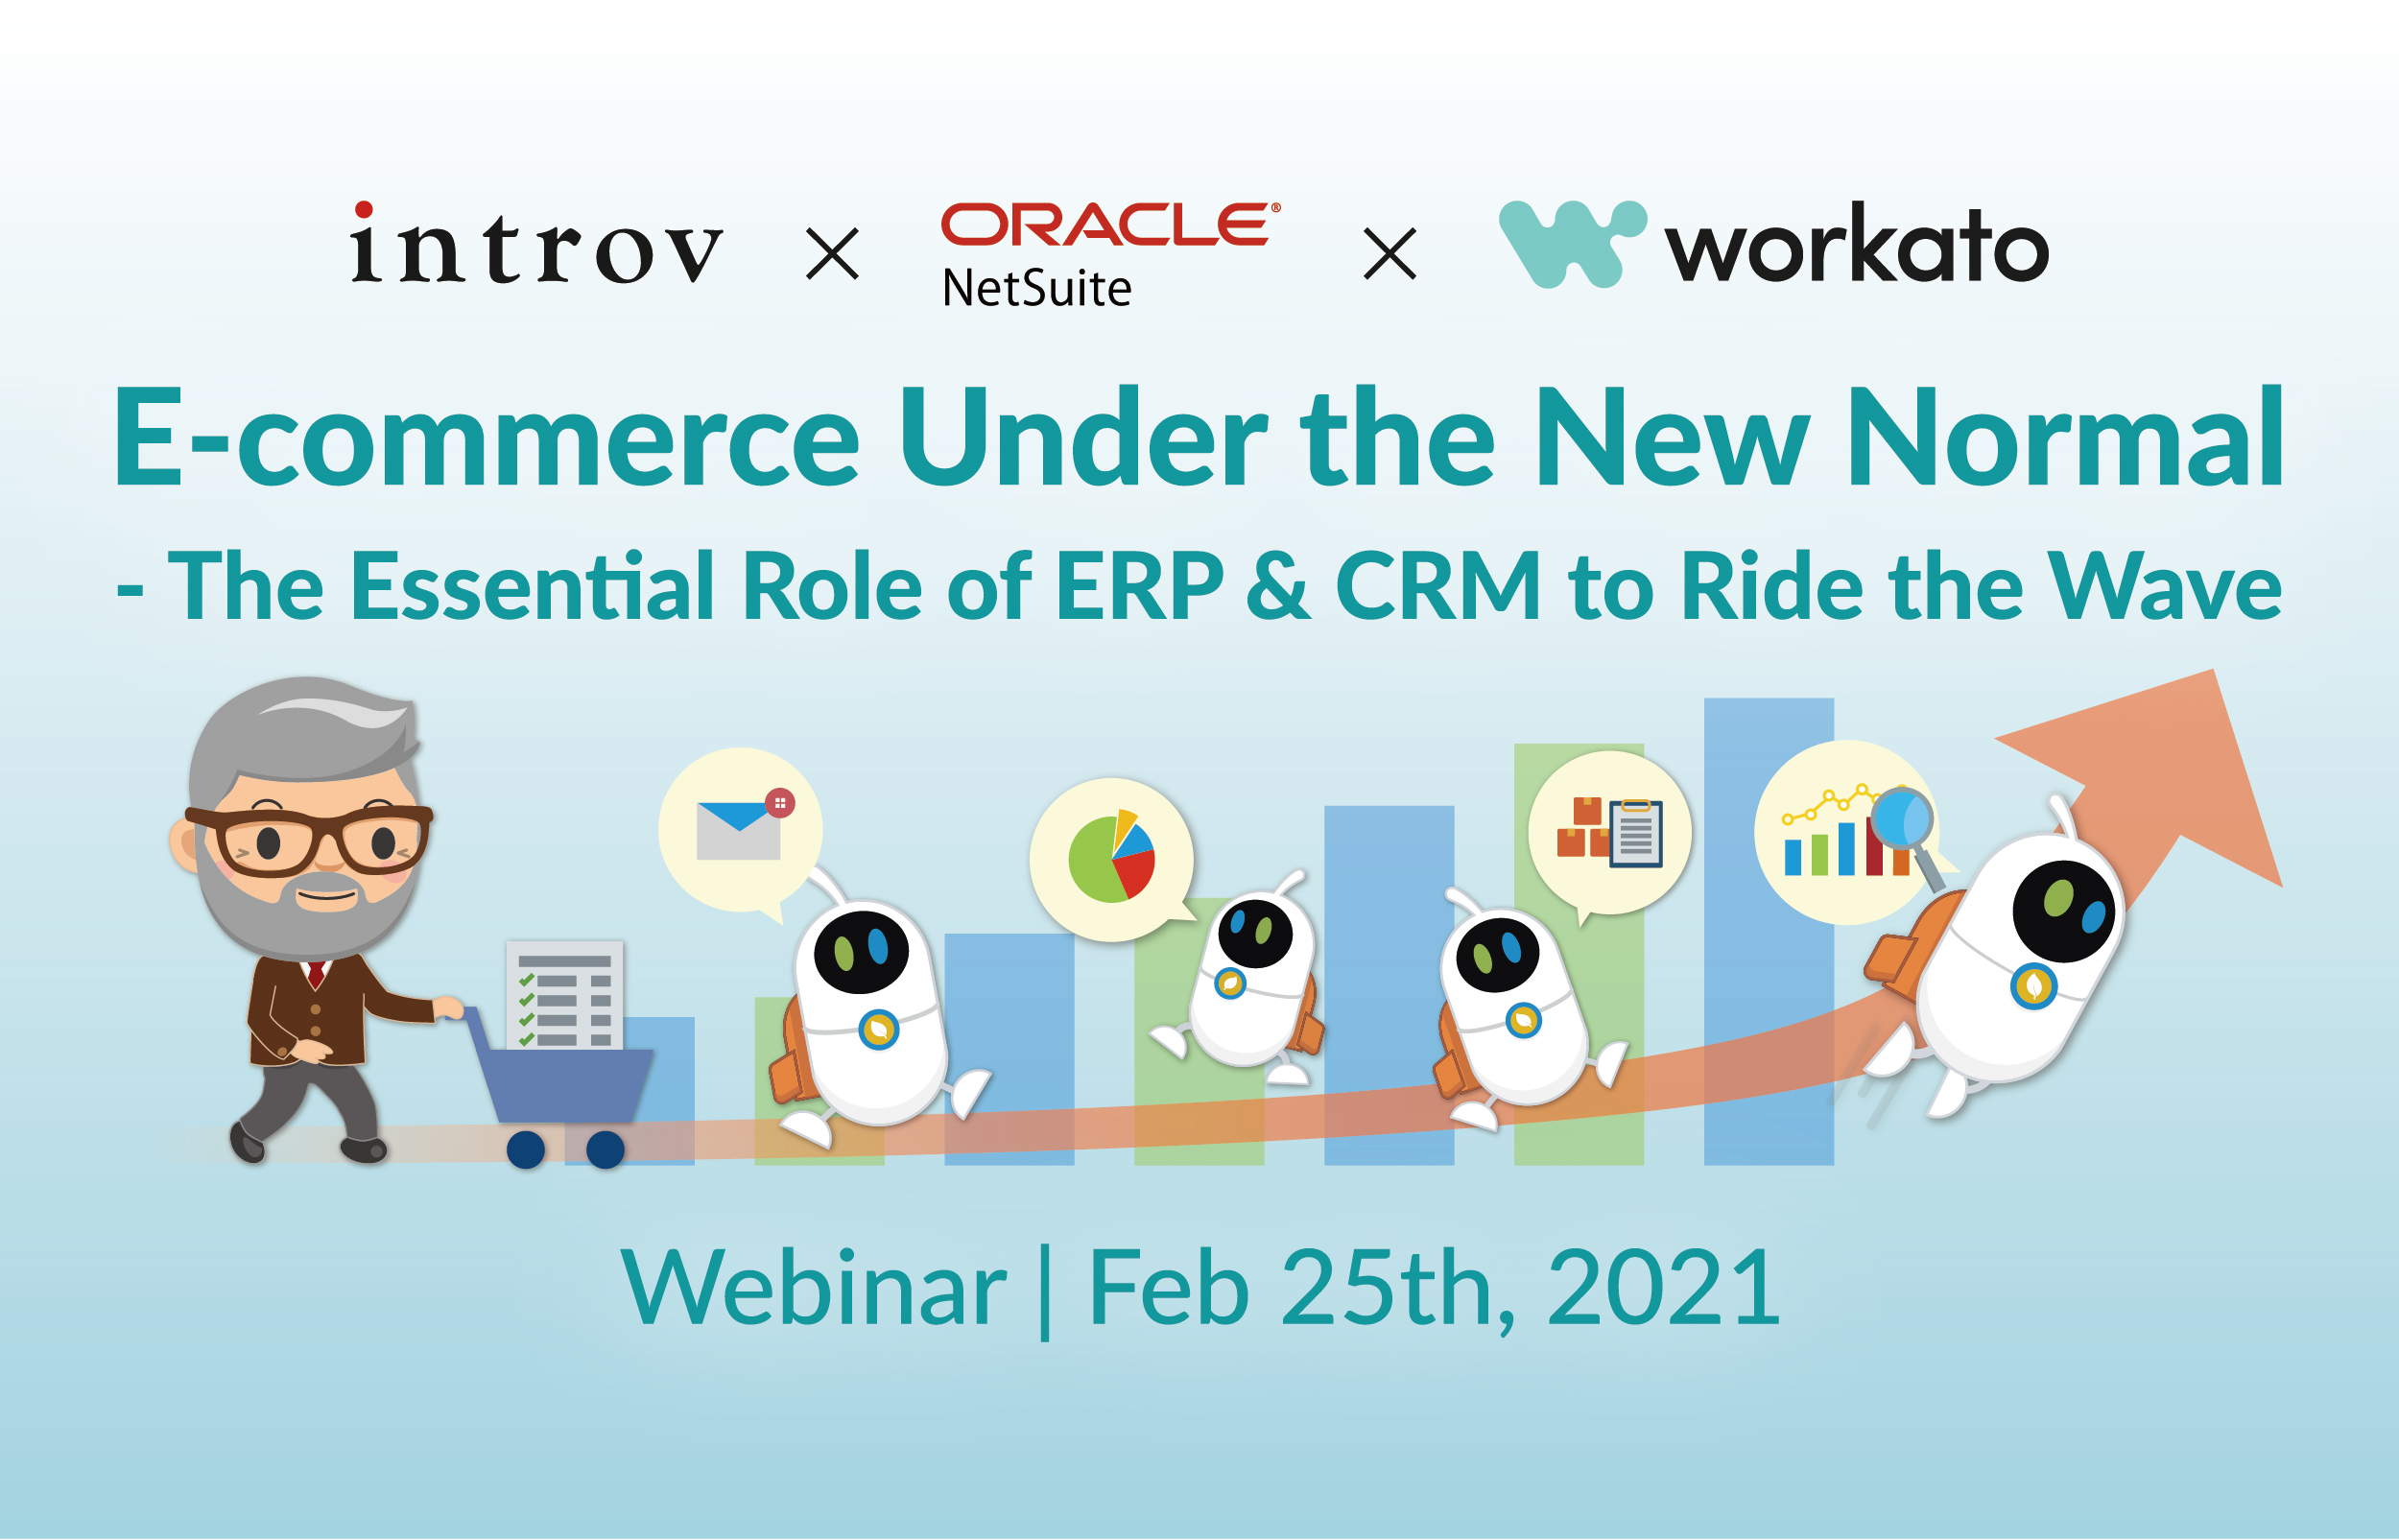 Webinar: E-commerce Under the New Normal – The Essential Role of ERP & CRM to Ride the Wave